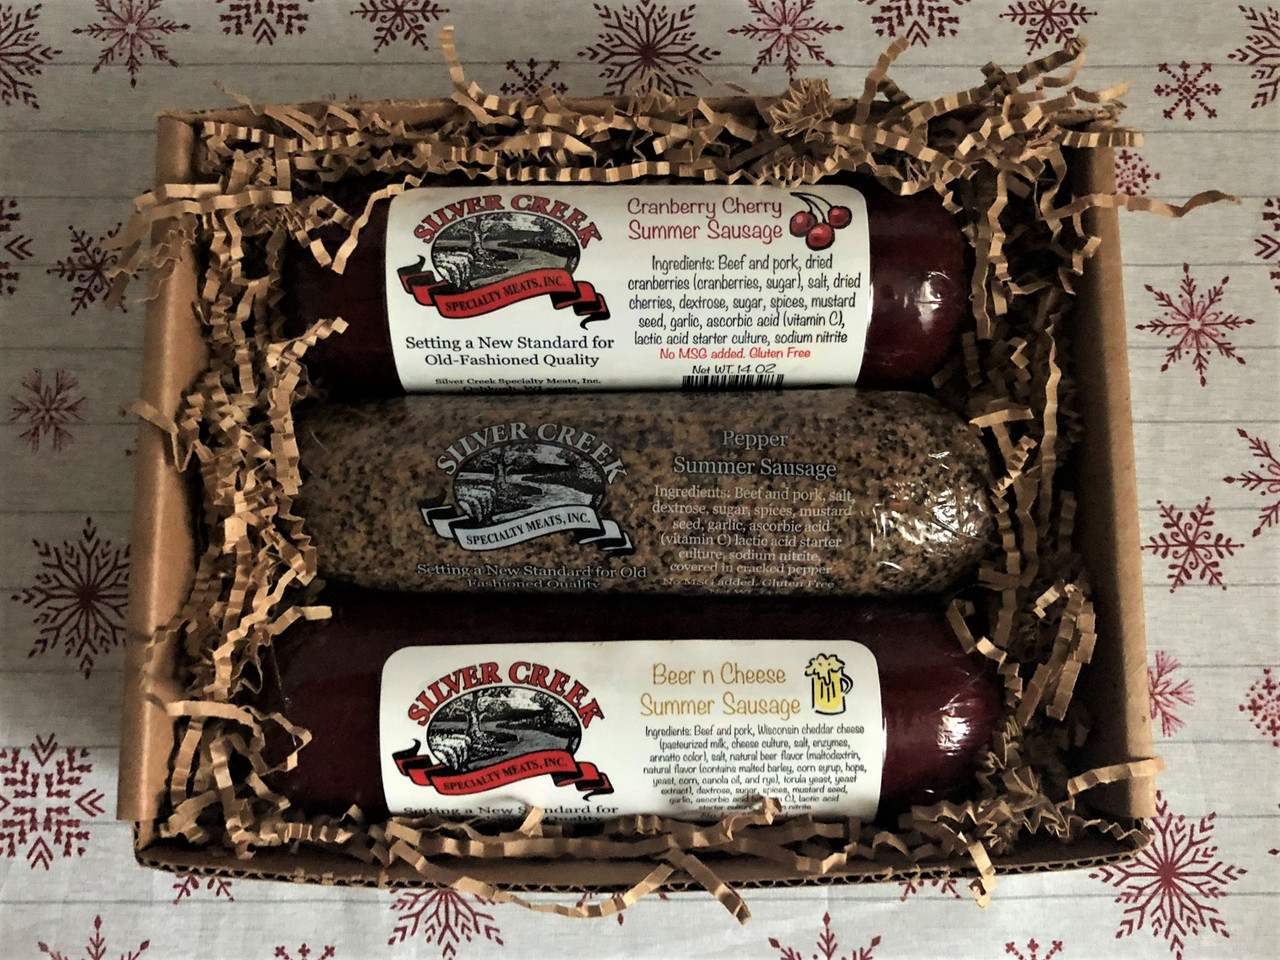 Silver Creek Specialty Summer Sausage Sampler Cranberry Cherry ~ Cracked Black Pepper ~ Beer N Cheese all in a 14 oz size